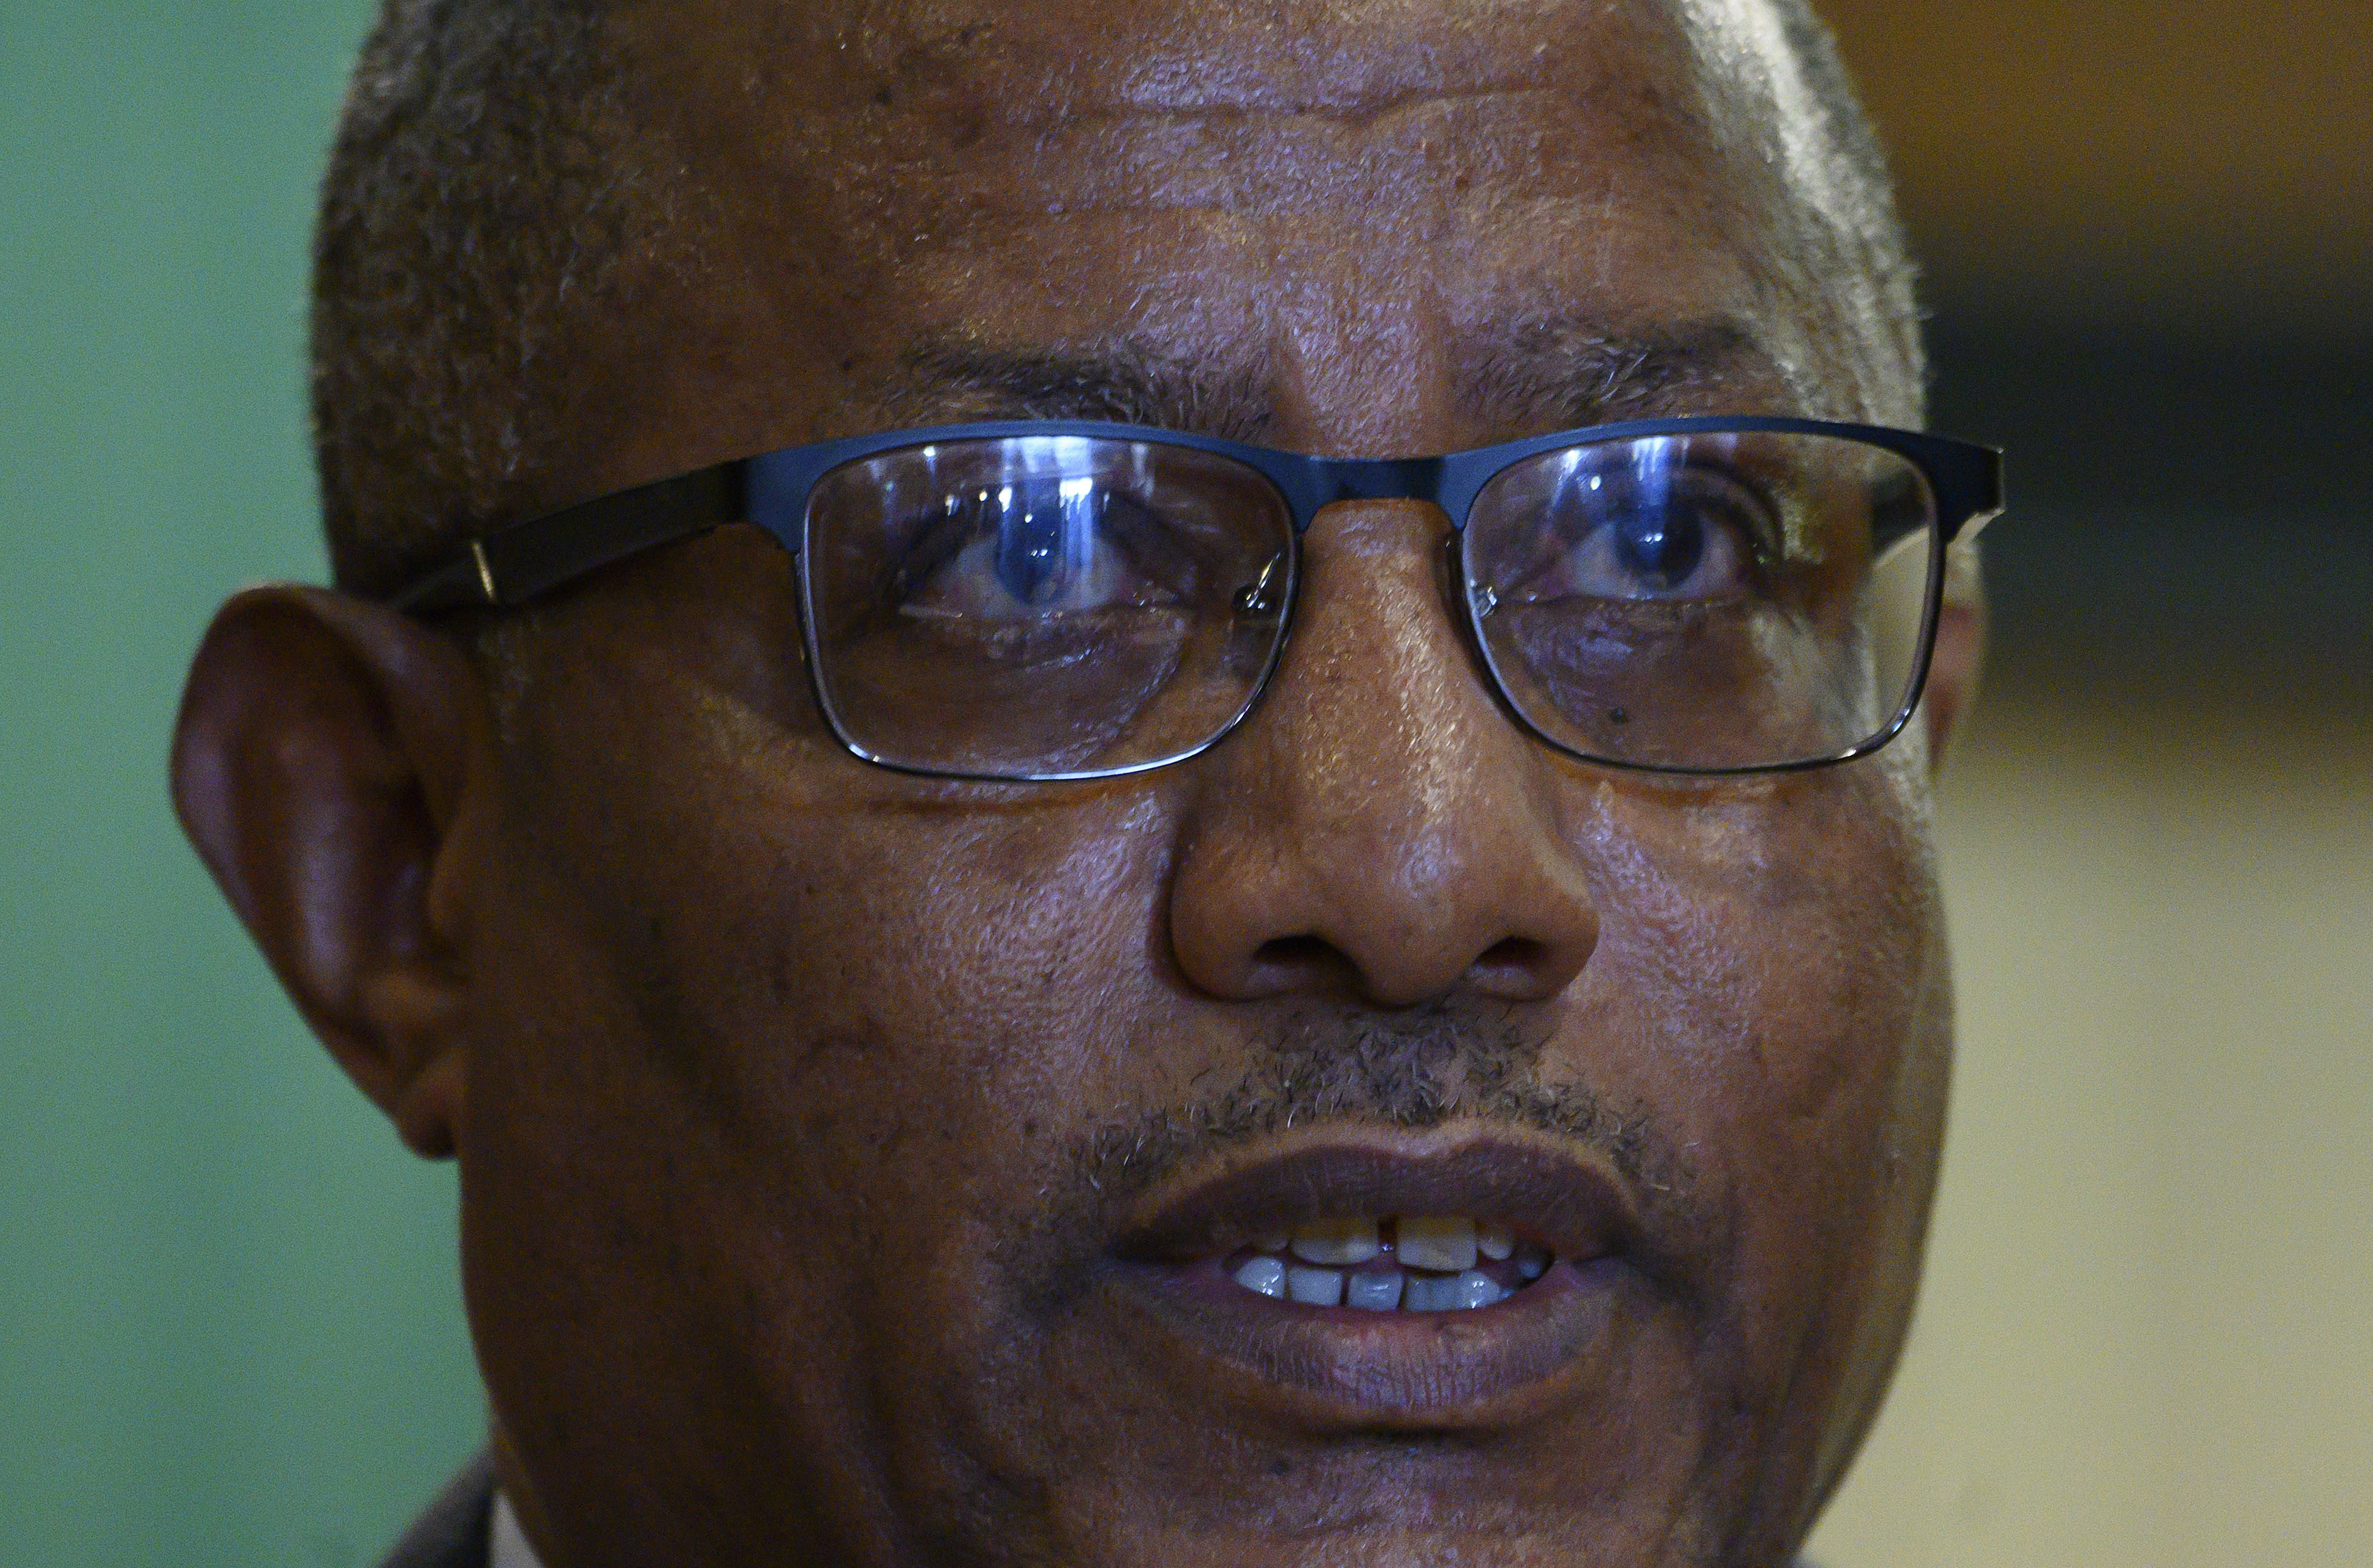 FILE - In this Tuesday, Feb. 18, 2020 file photo, Ethiopia's Foreign Minister Gedu Andargachew speaks during a press conference with U.S. Secretary of State Mike Pompeo, at the Sheraton Hotel, in Addis Ababa, Ethiopia. In an interview with The Associated Press Friday, June 19, 2020, Ethiopia's Foreign Minister Gedu Andargachew declared that his country will go ahead and start filling the $4.6 billion Grand Ethiopian Renaissance Dam next month, even without an agreement with Egypt and Sudan. (Andrew Caballero-Reynolds/Pool Photo via AP, File)